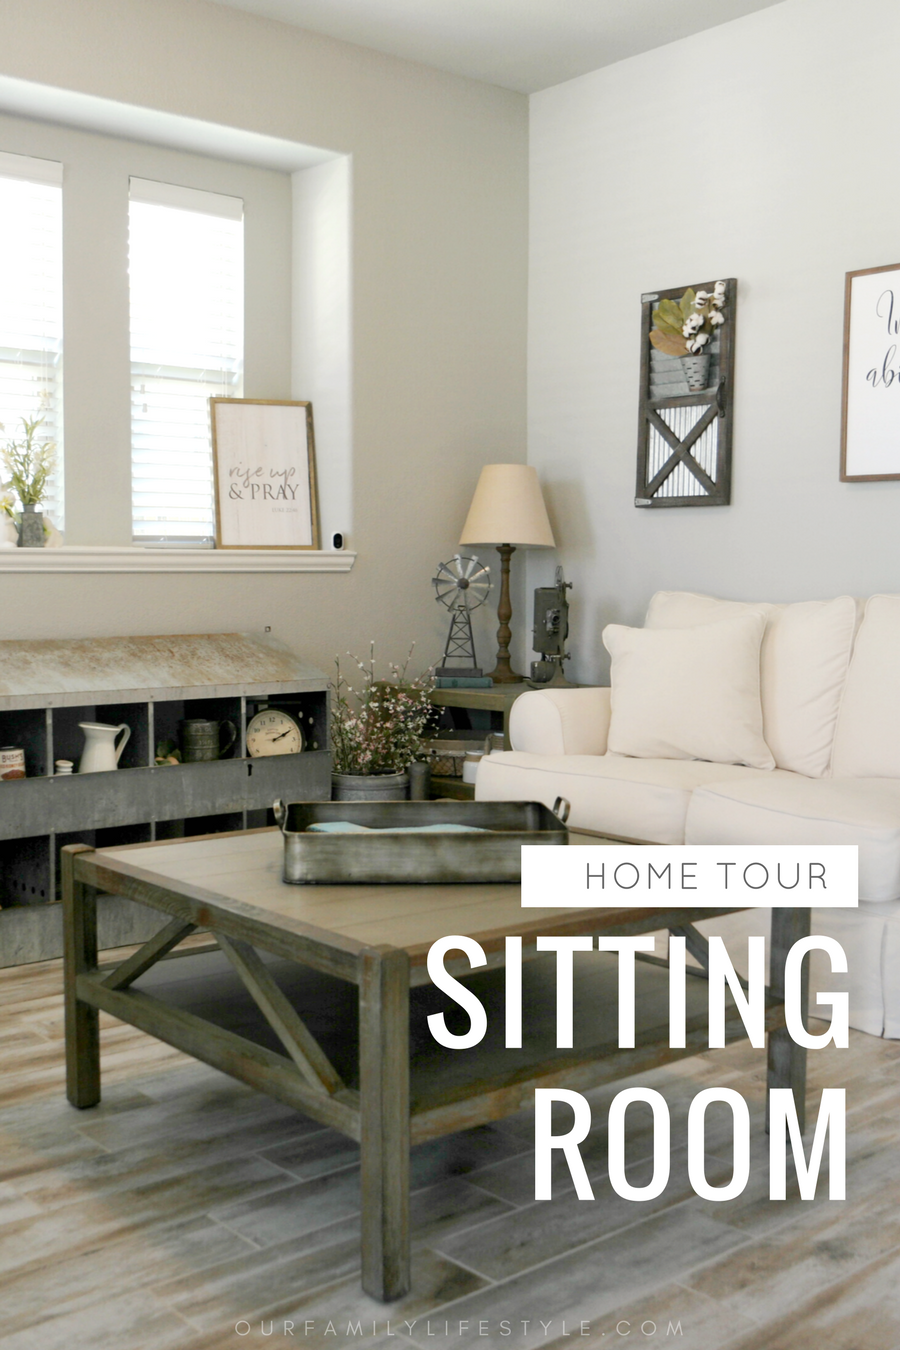 Home Tour :: Sitting Room